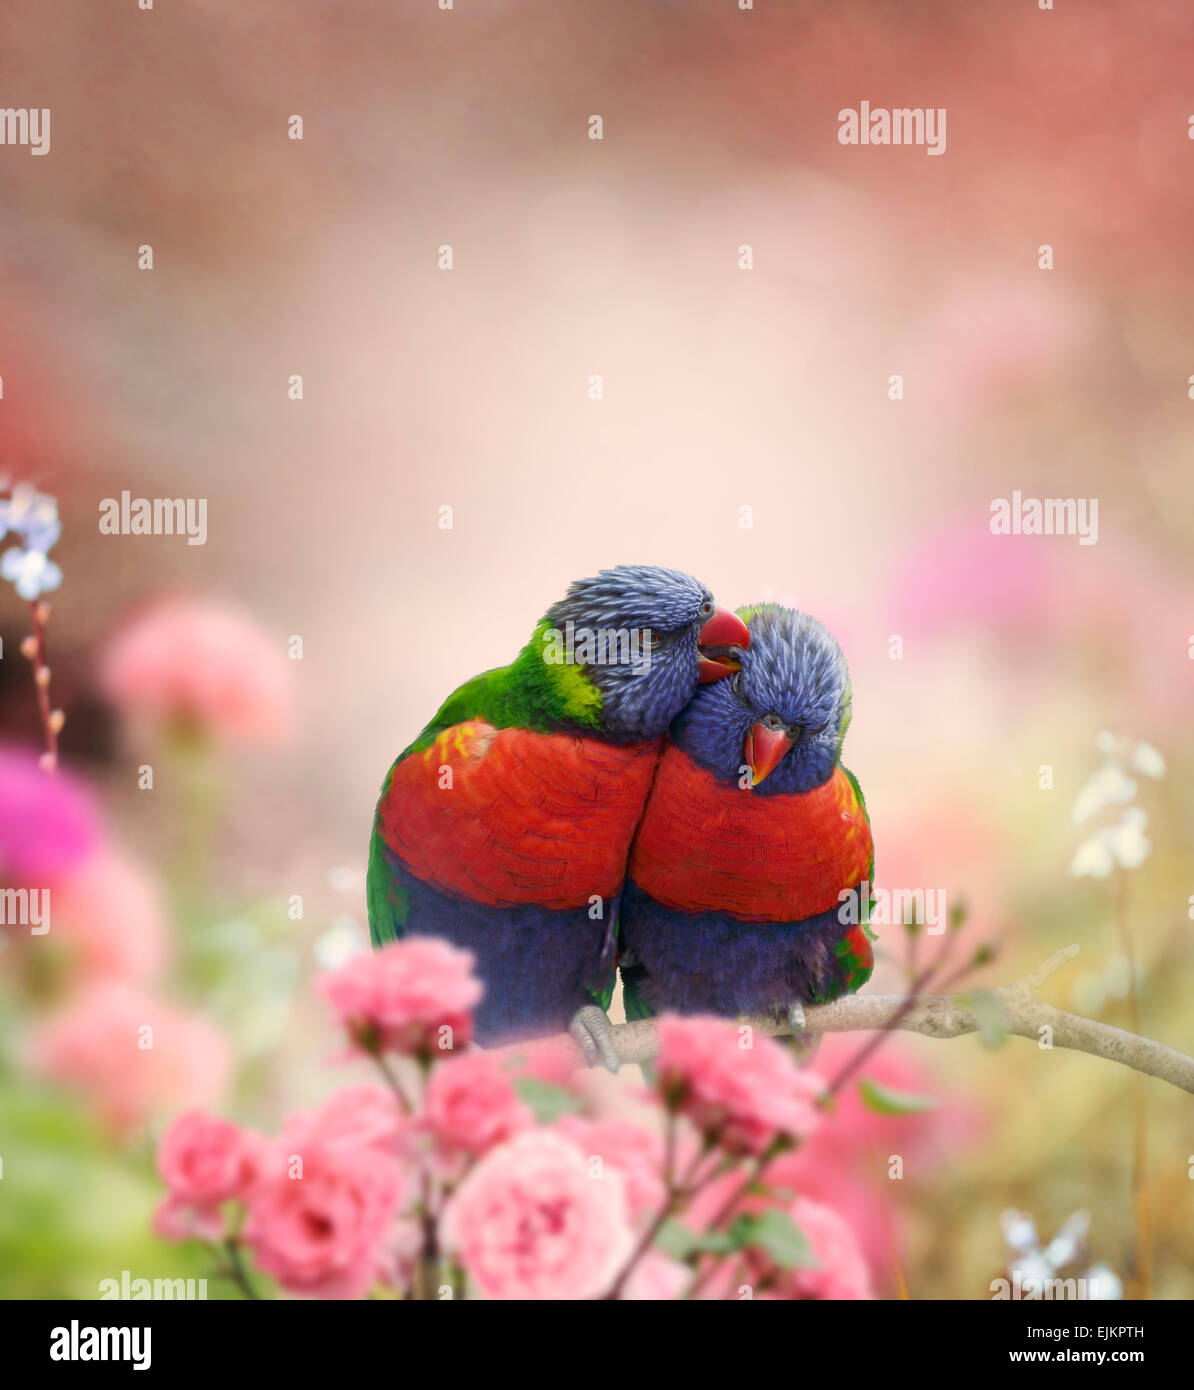 Rainbow Lorikeets Perched In The Garden - Stock Image